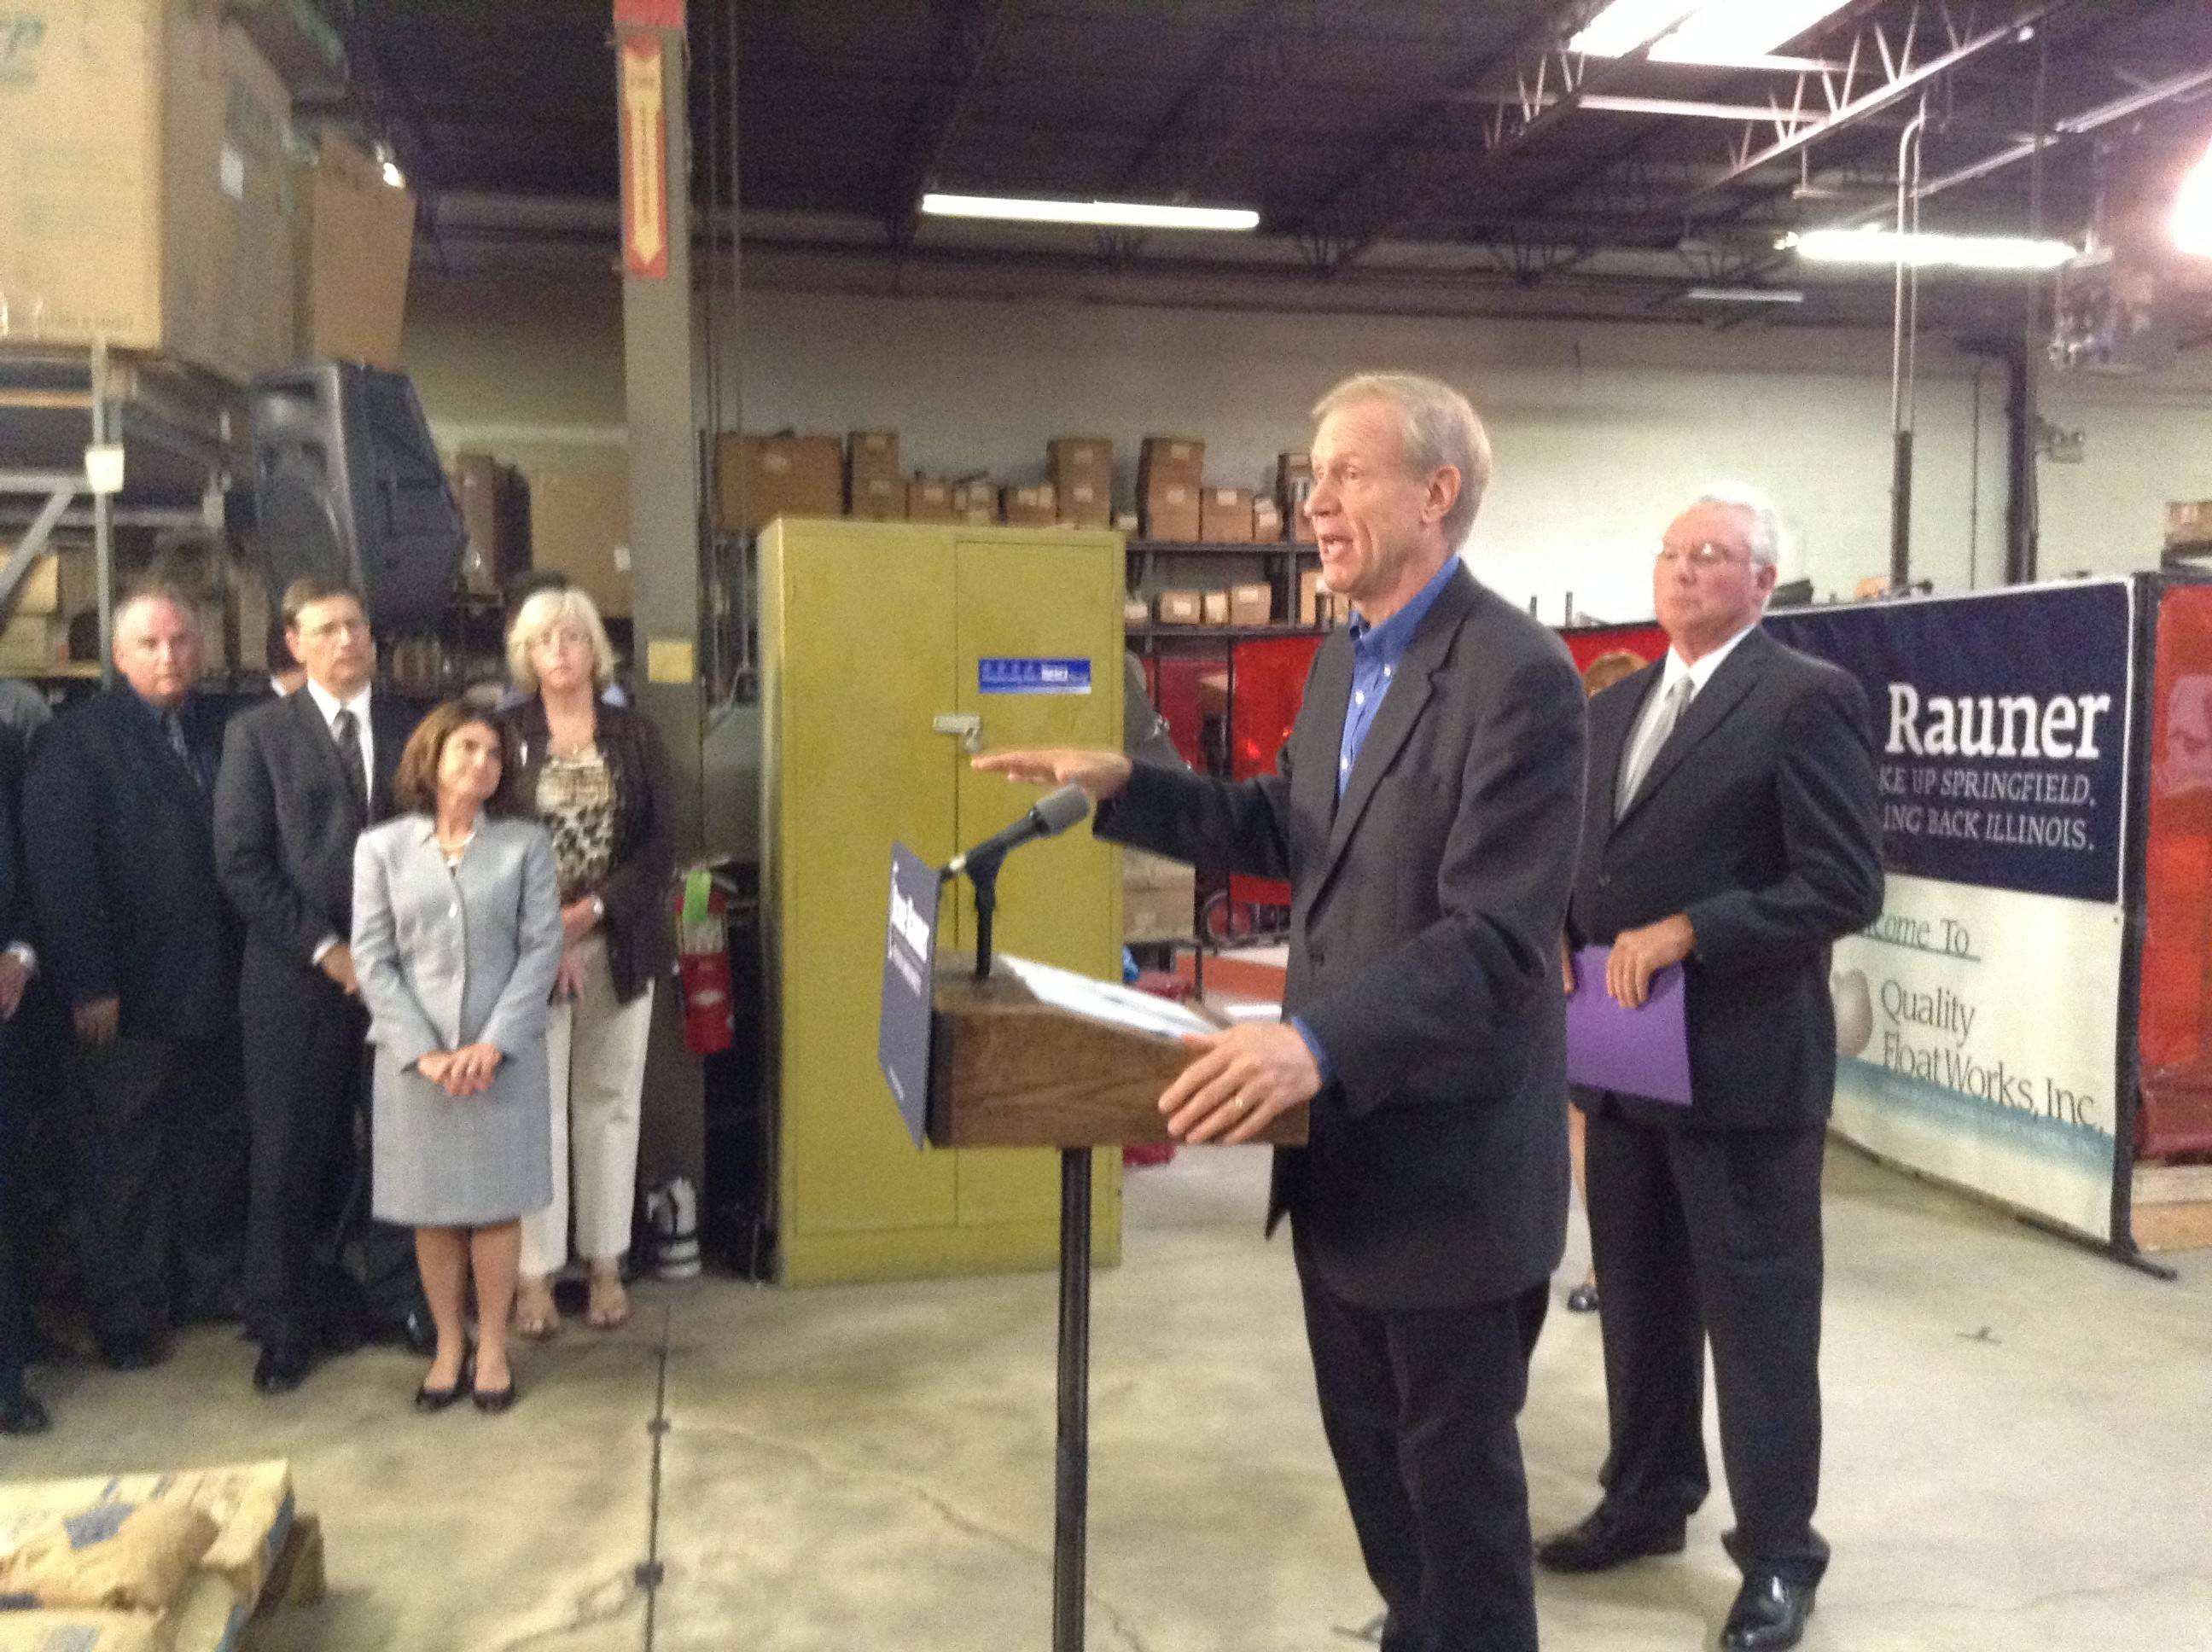 Illinois Republican gubernatorial candidate Bruce Rauner announces his job growth and tax reform plans at Quality Float Works in Schaumburg Thursday.